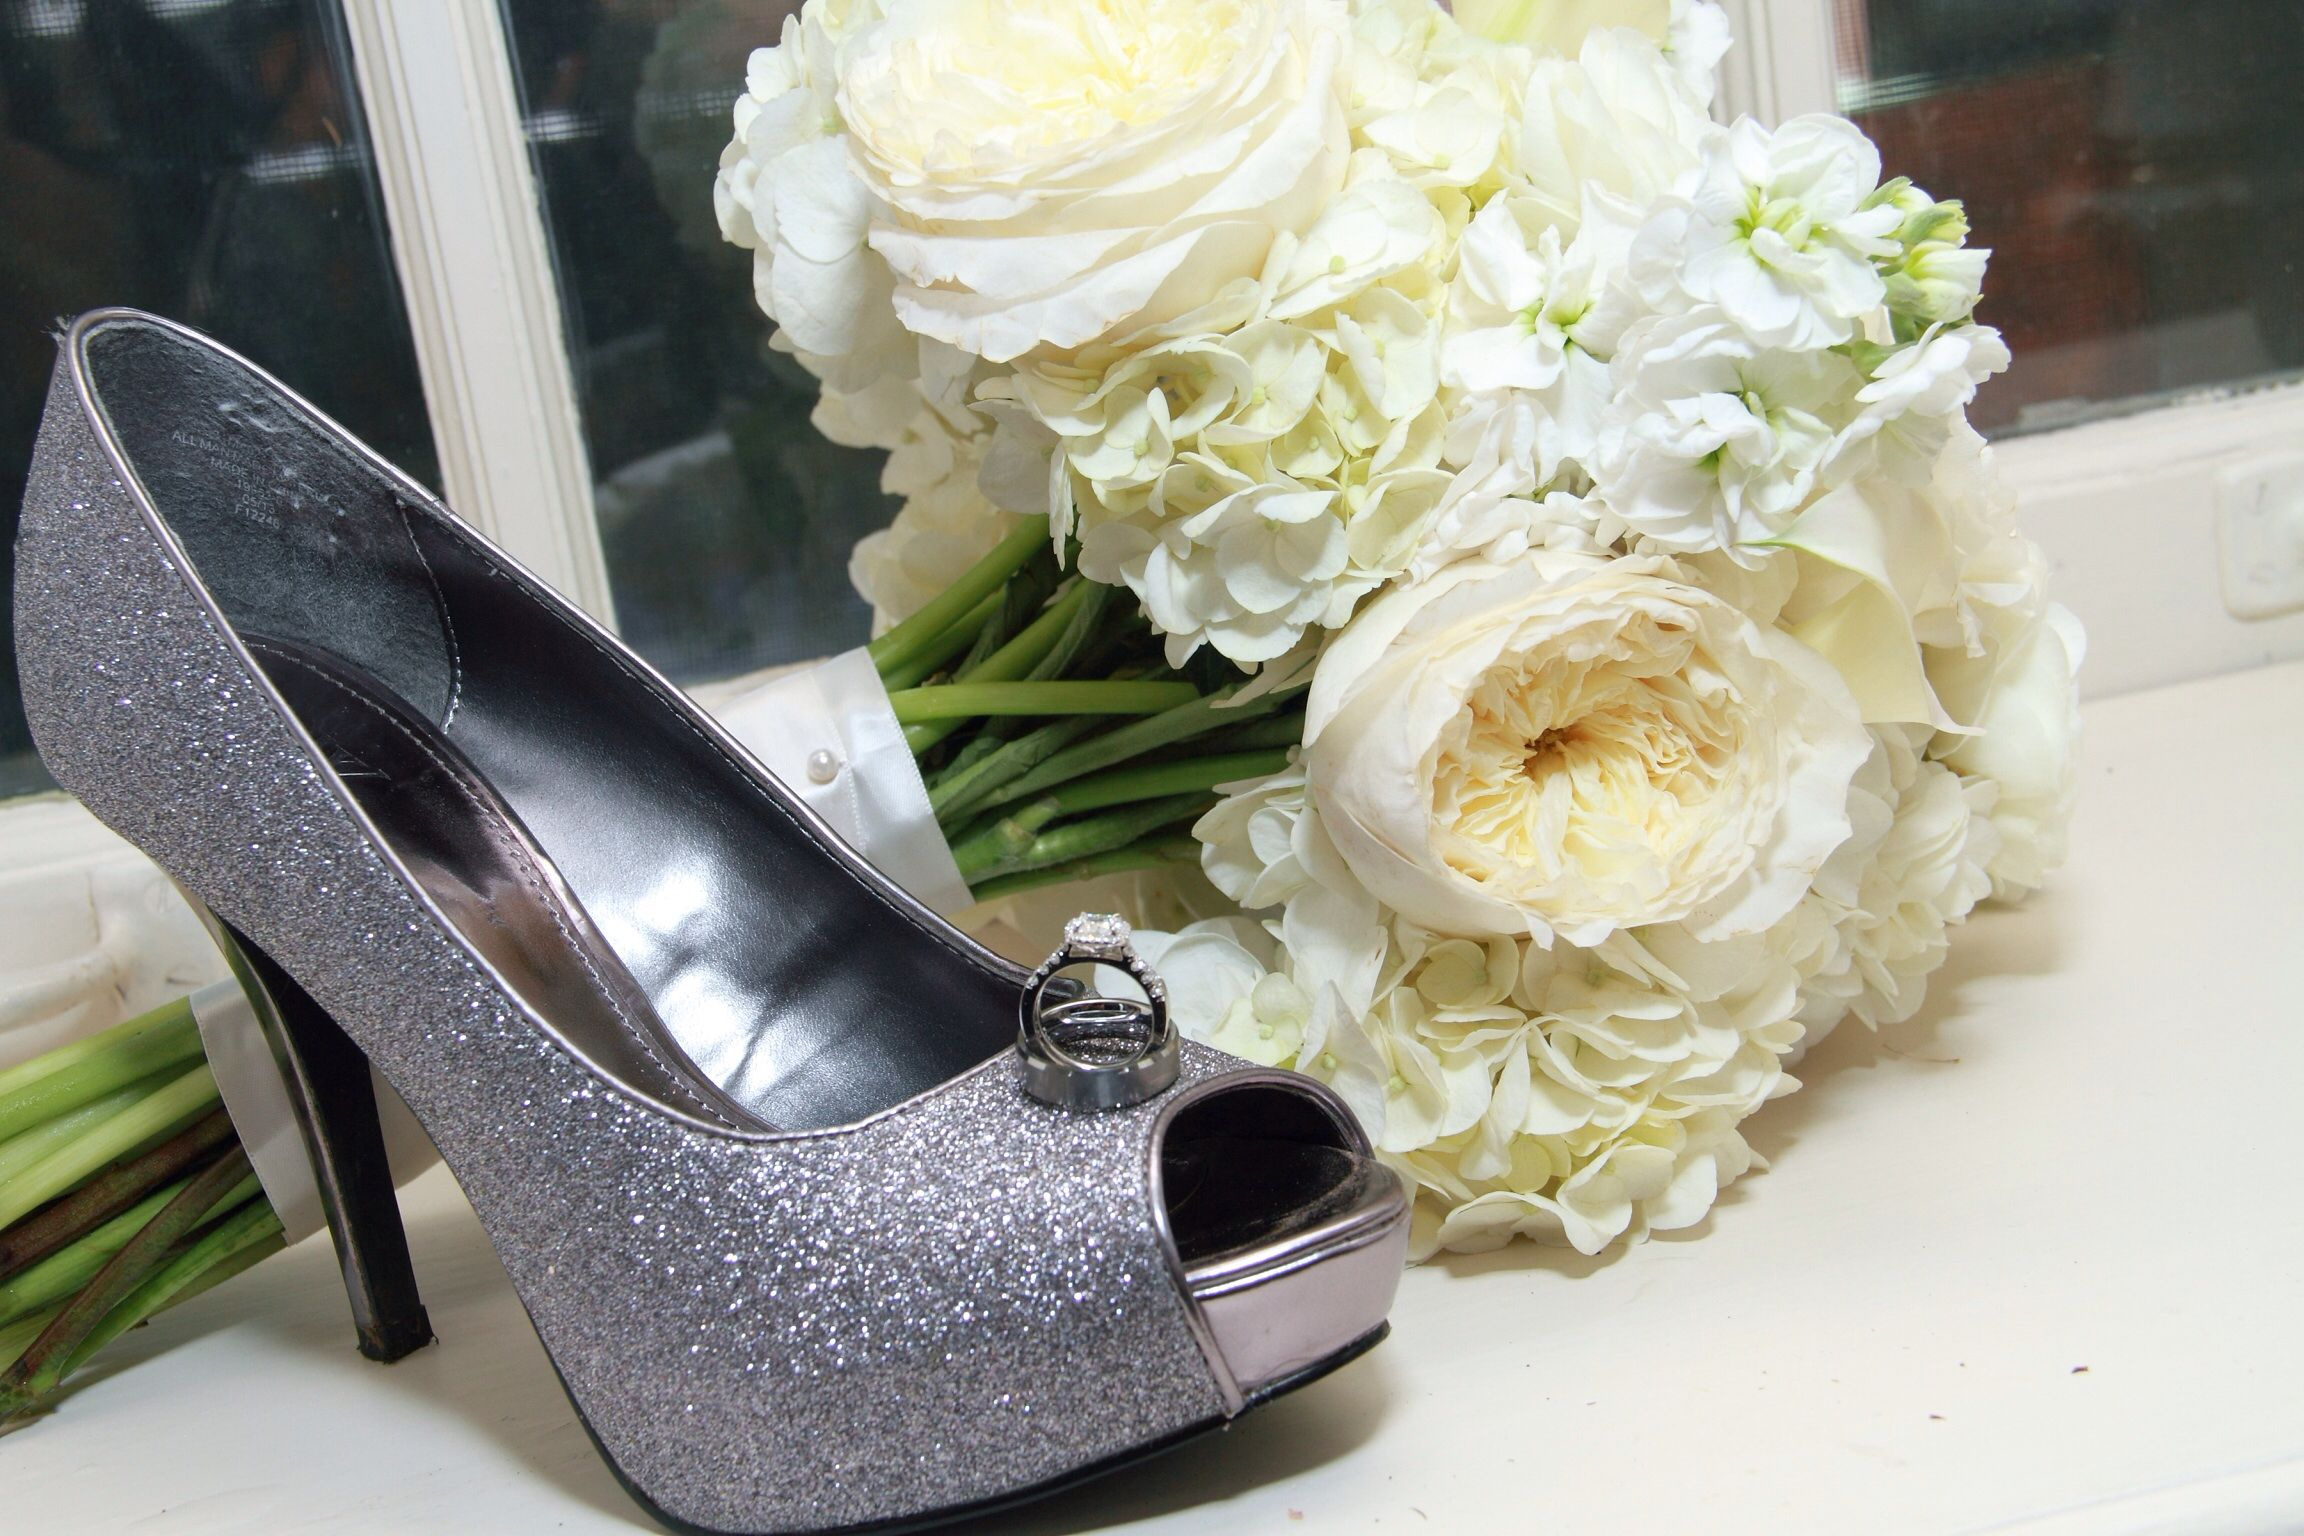 Wedding photo of the bride's accessories: Rings, shoes and bouquet